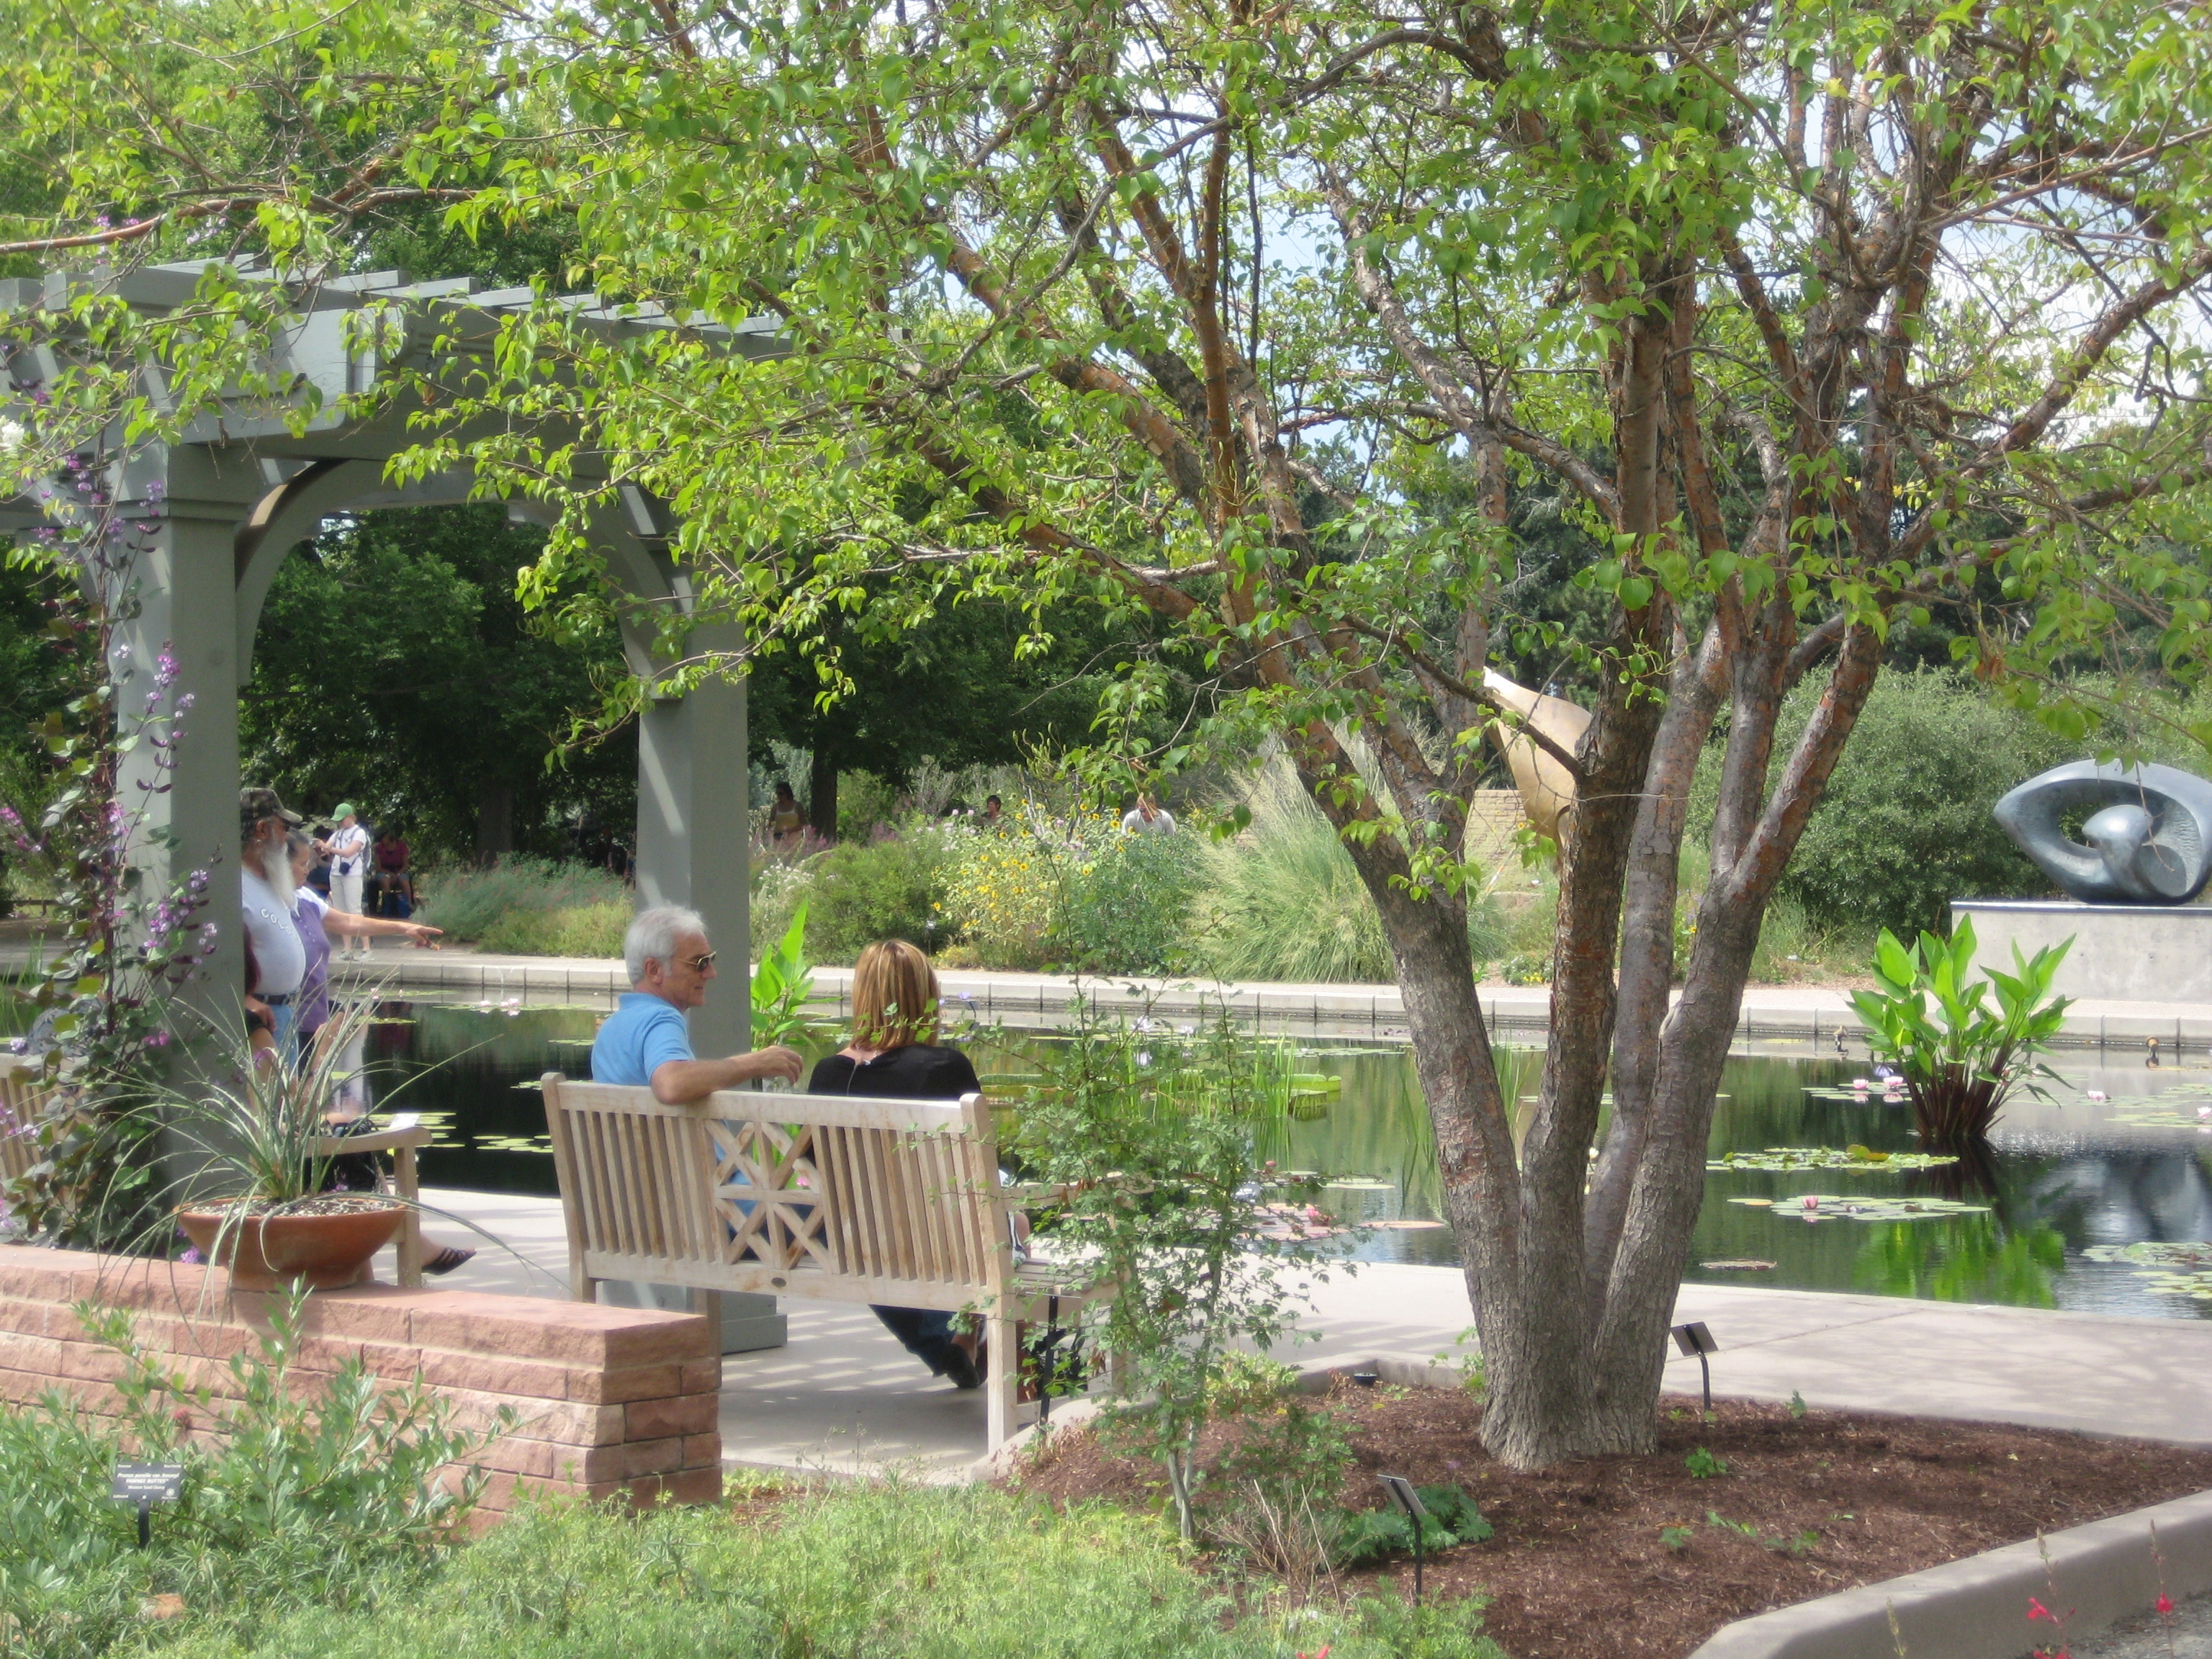 Good idea free days at denver attractions the good life denver for Botanic gardens denver free days